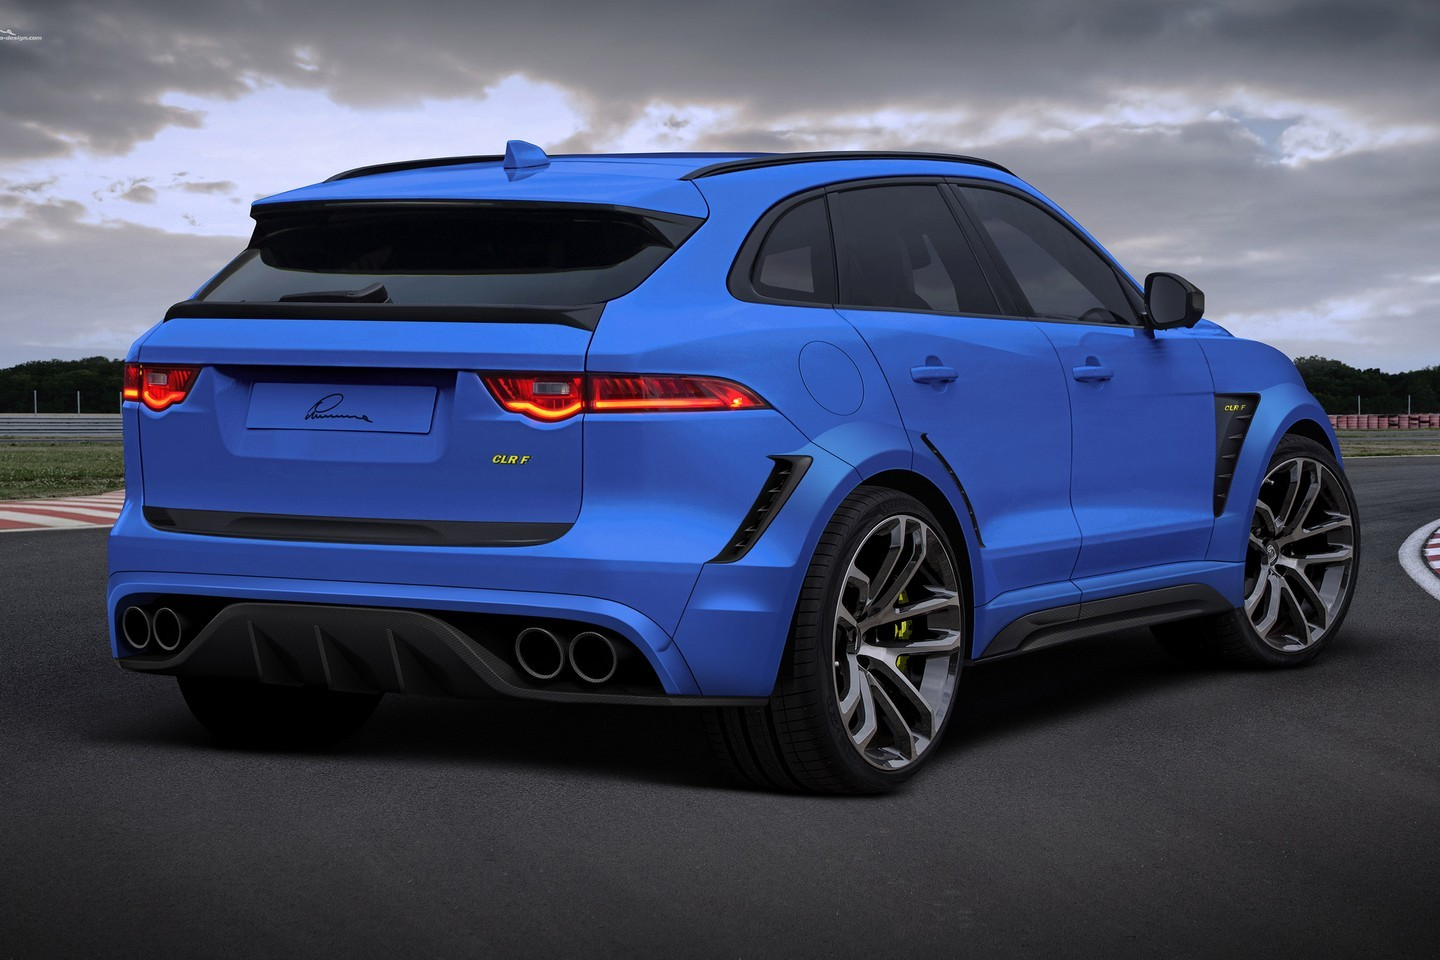 hight resolution of jaguar f pace gets widebody kit and 24 inch wheels from lumma